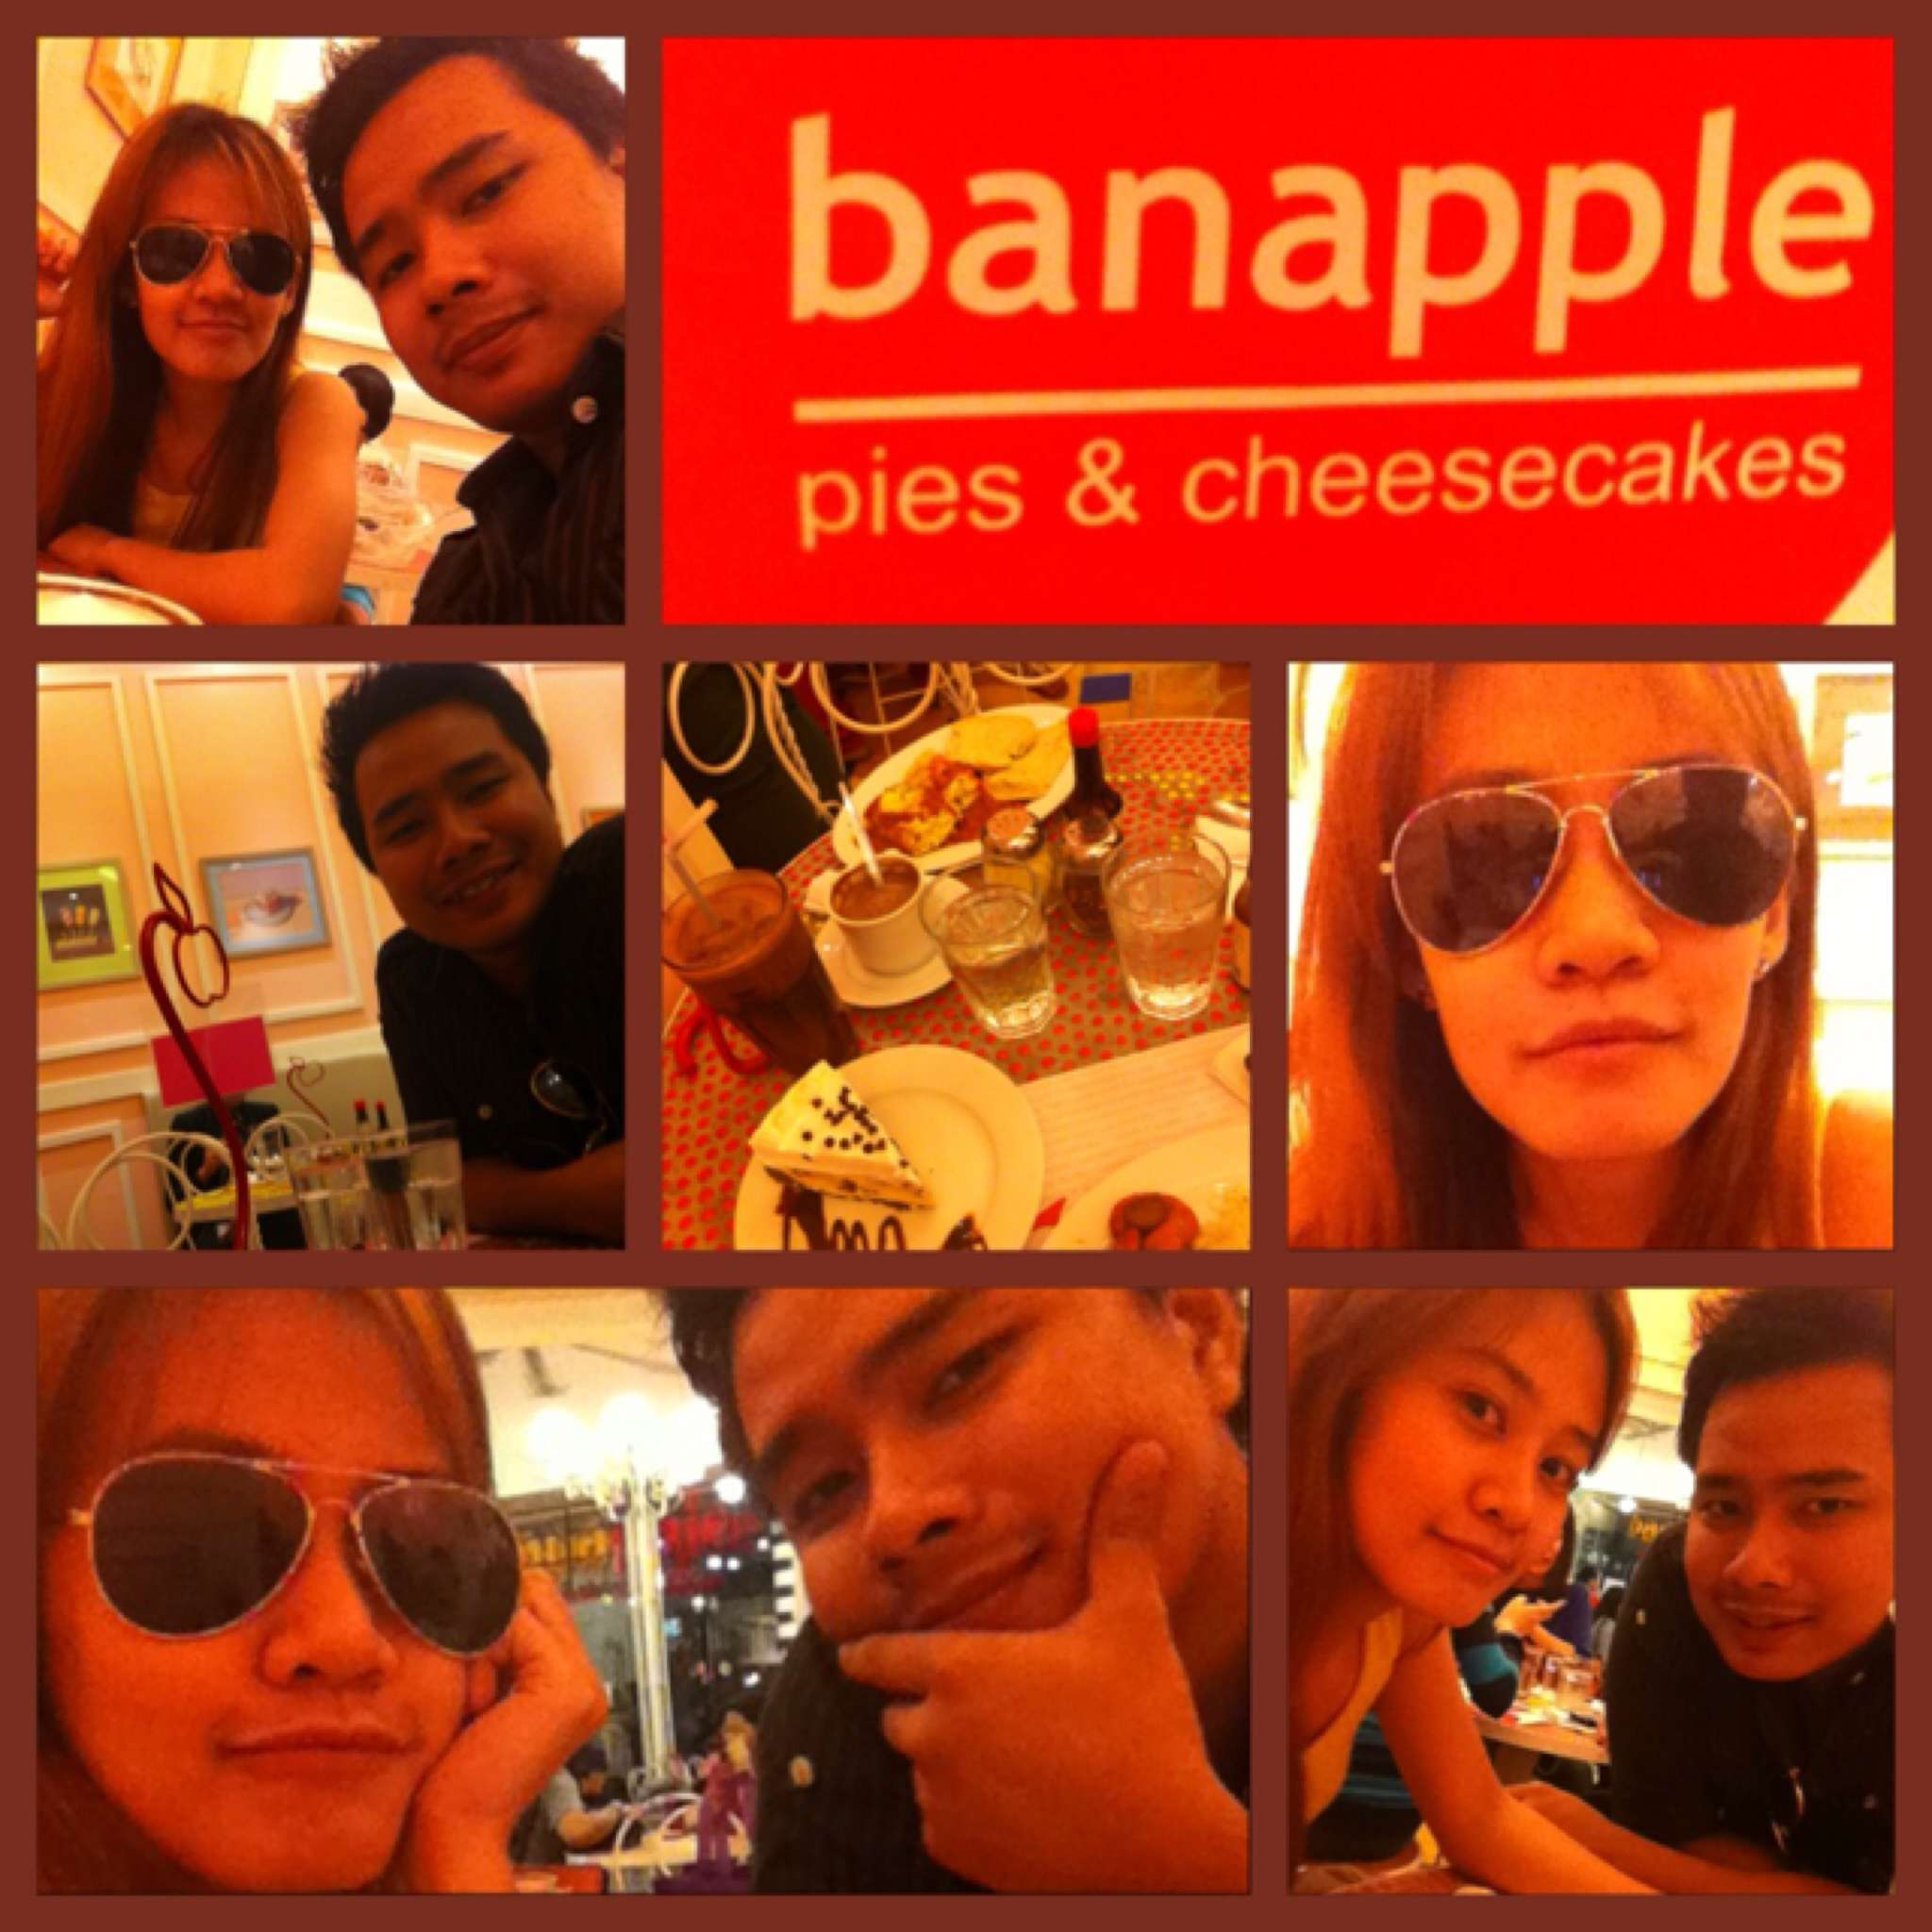 Banapple Pies & Cheesecakes